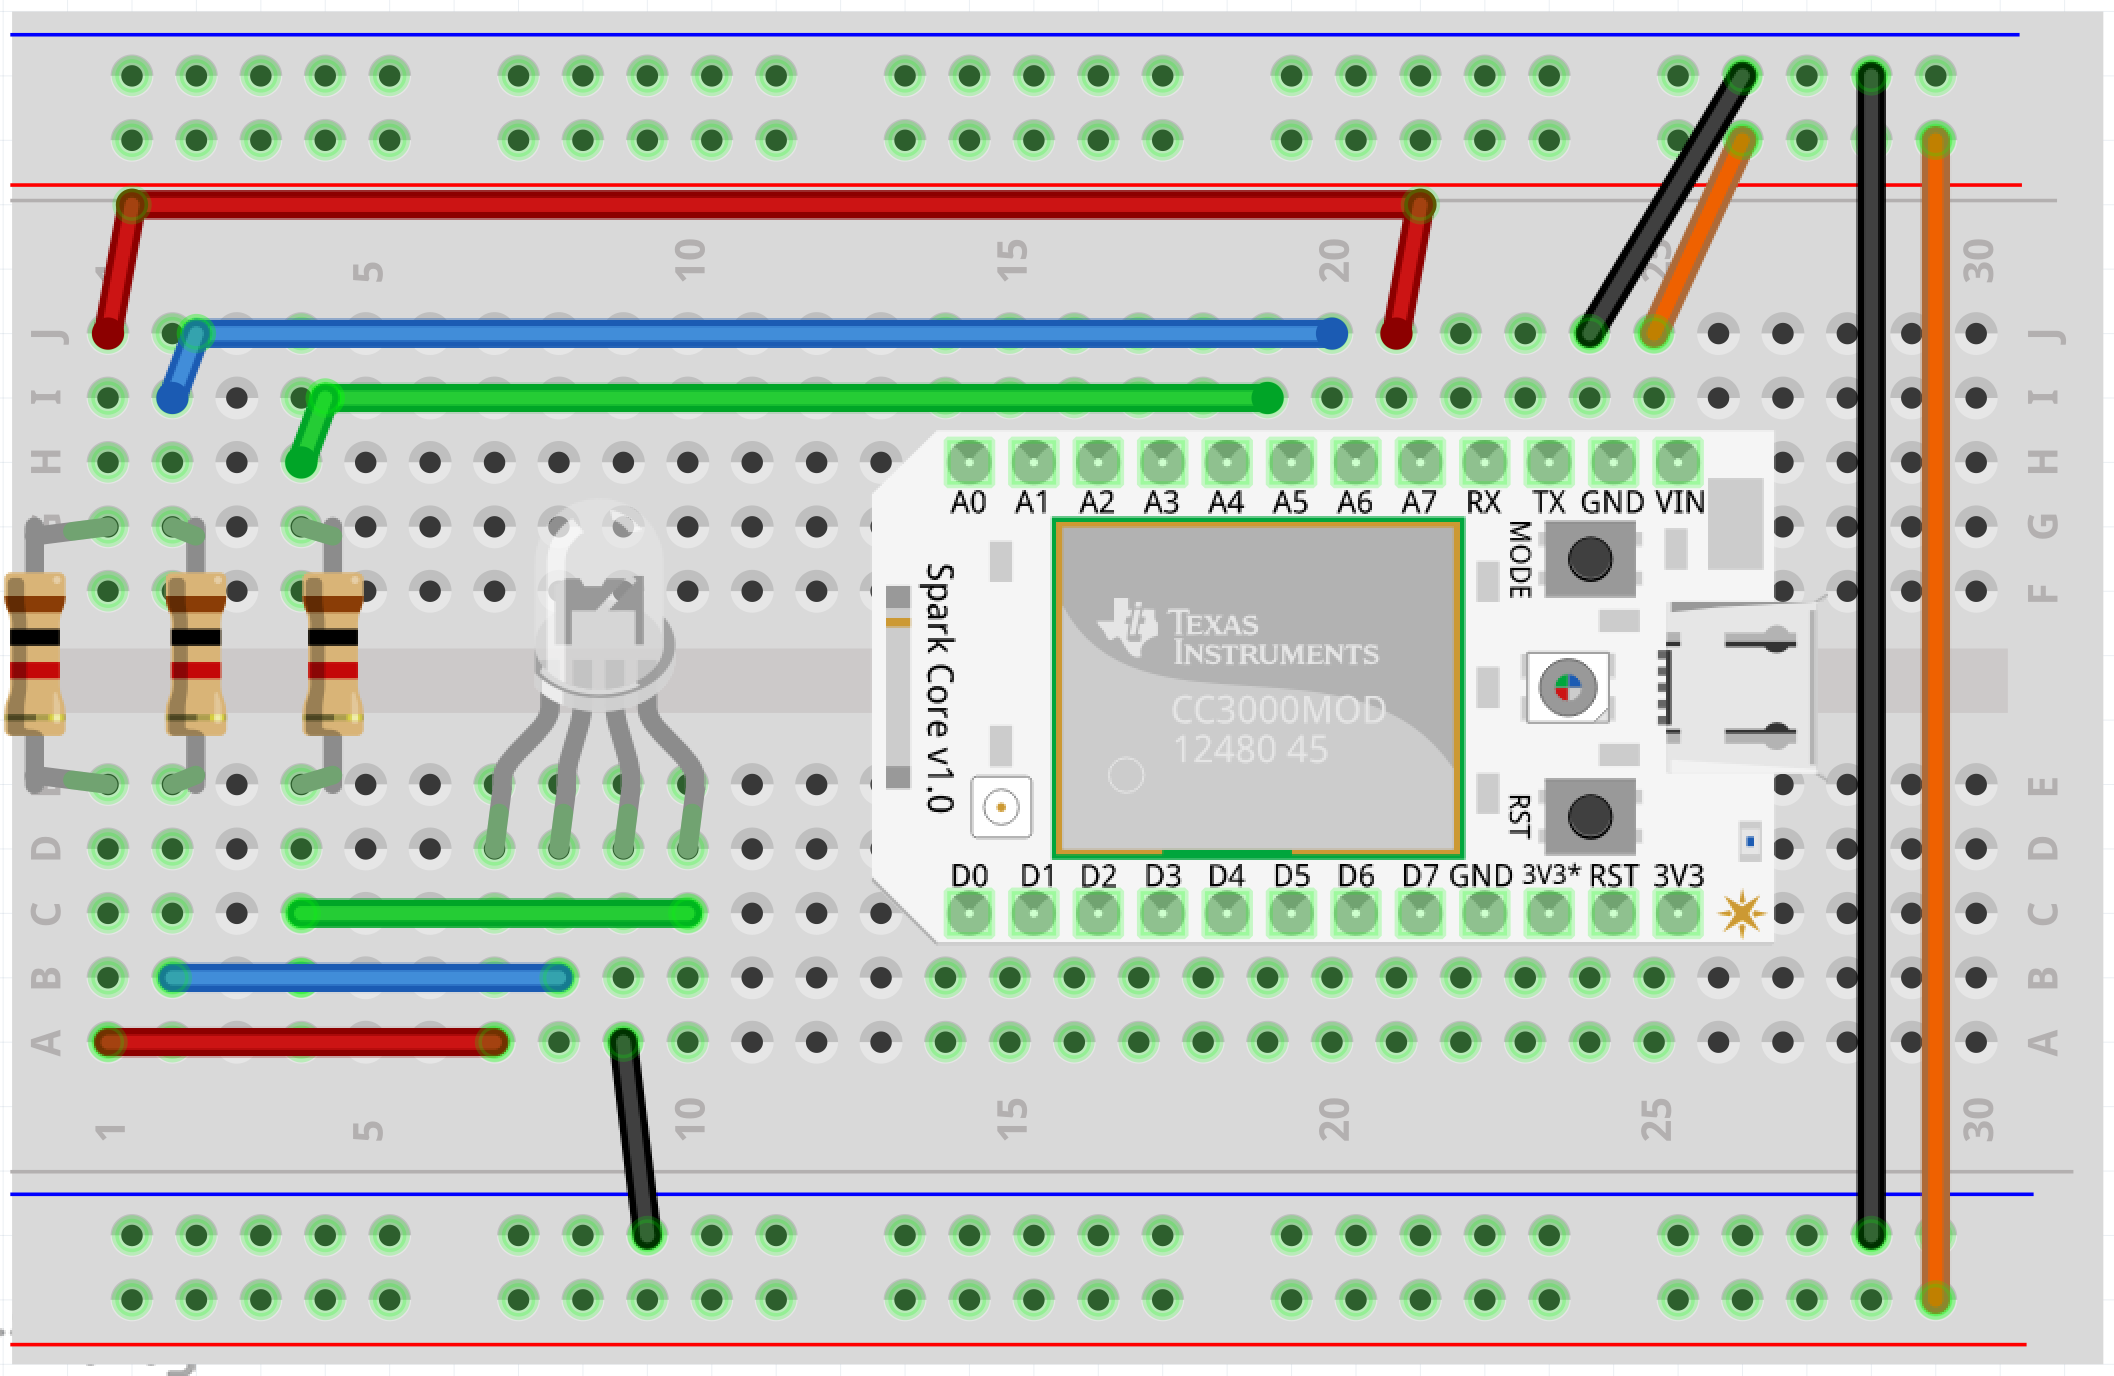 Wiring breadboard with an RGB LED and Spark core